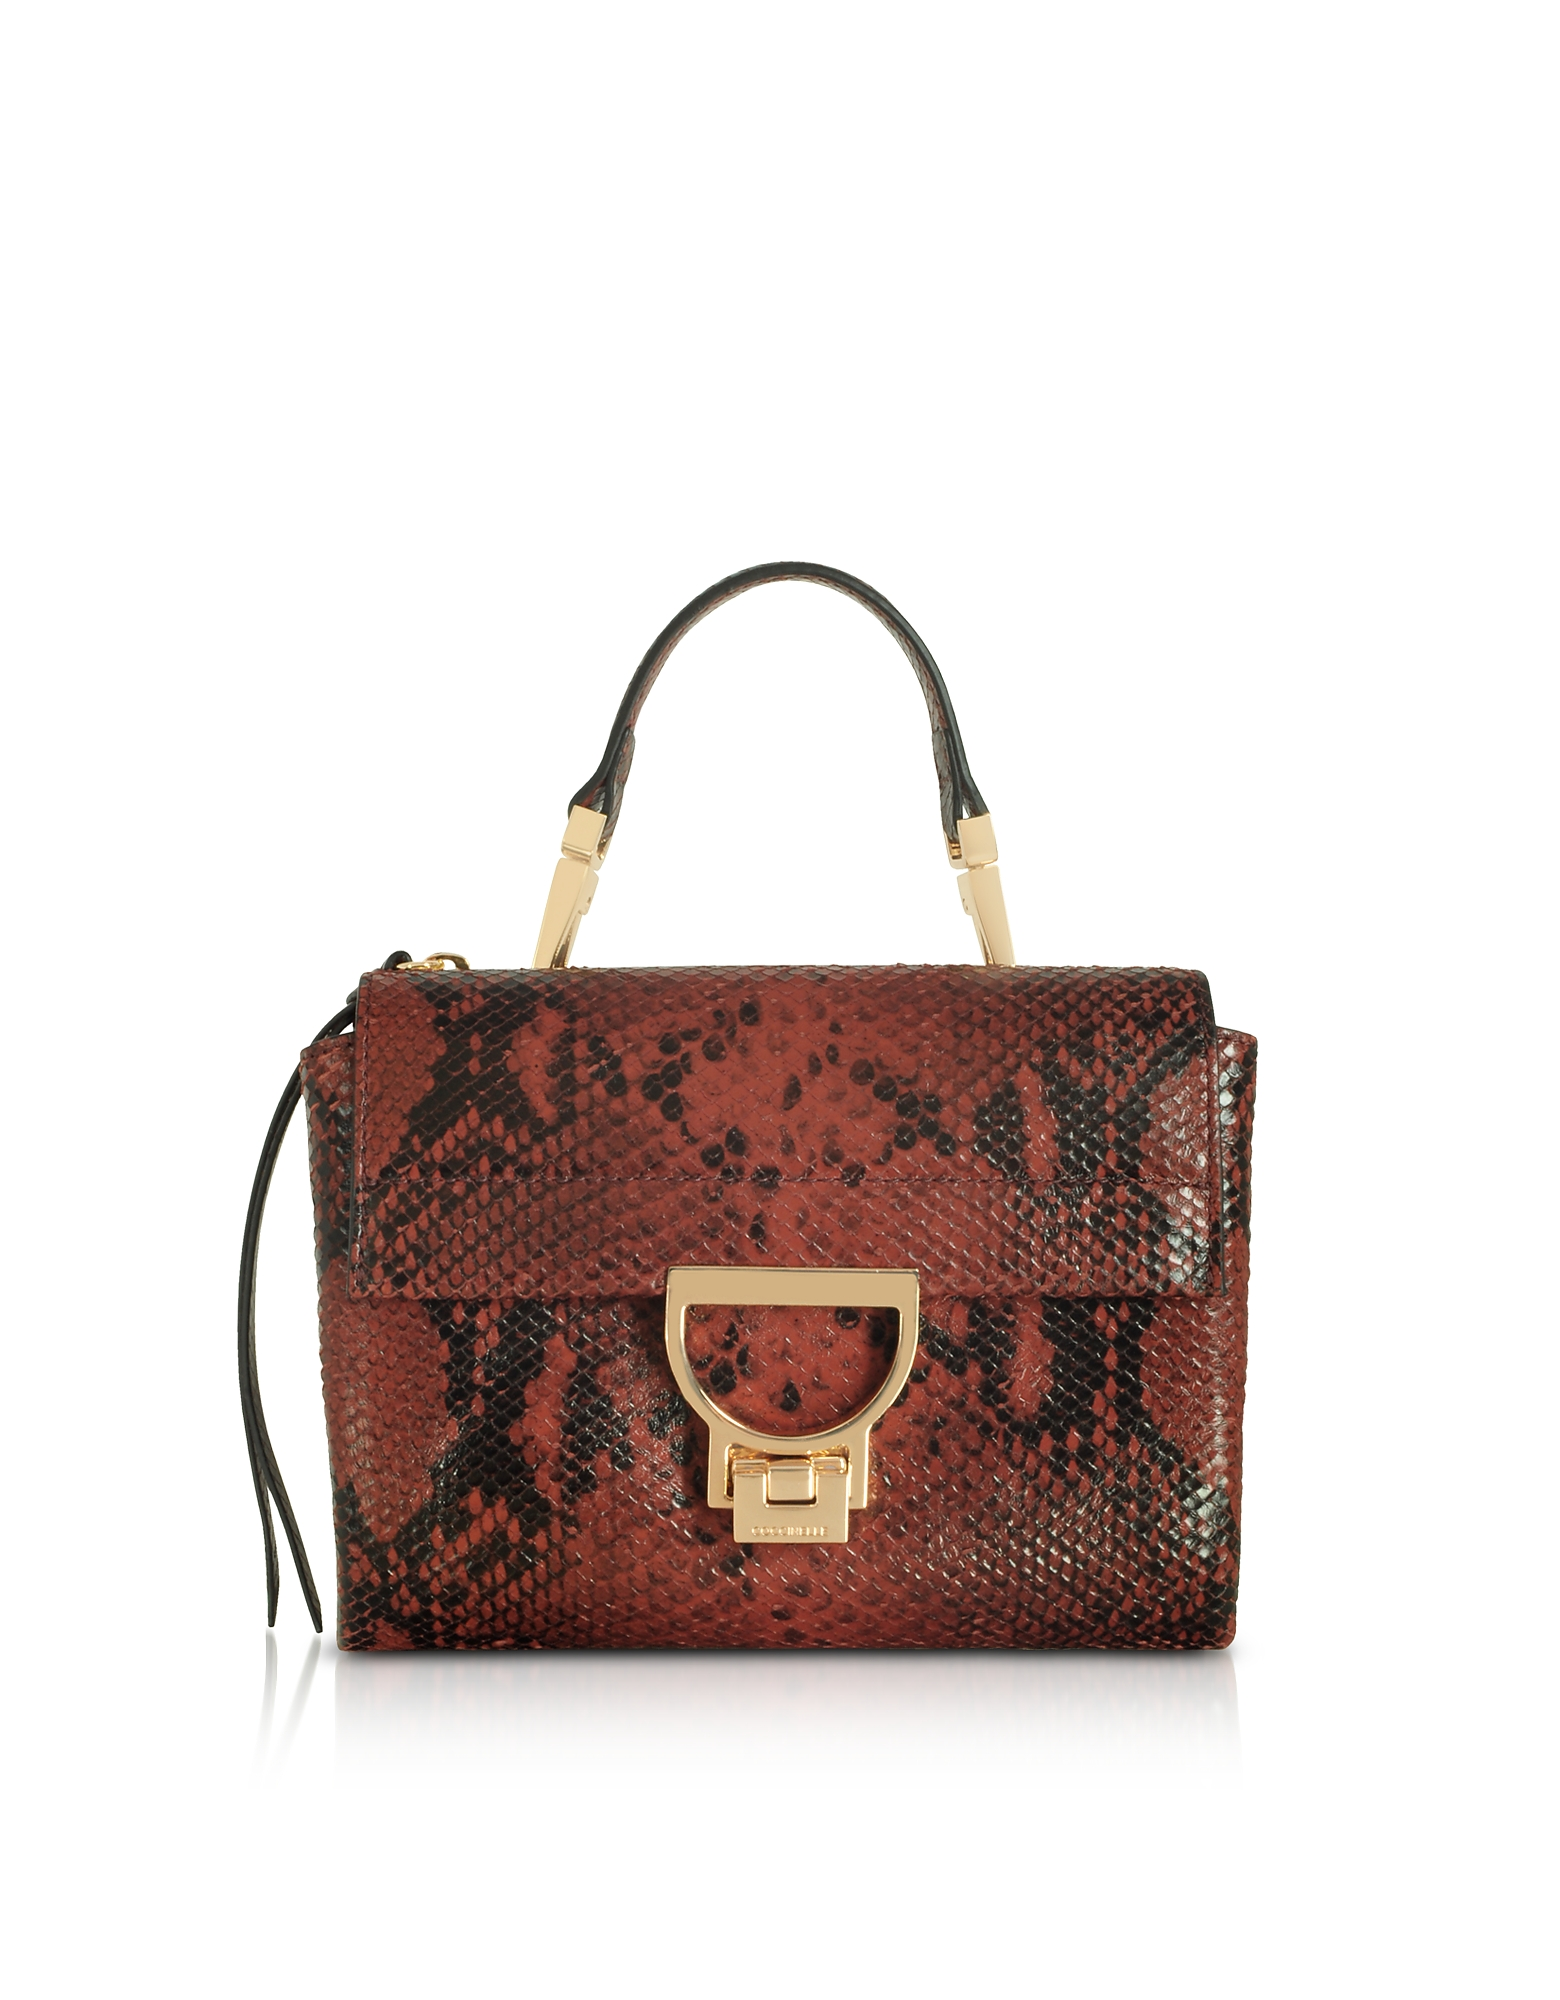 COCCINELLE ARLETTIS MINI BURGUNDY REPTILE PRINTED LEATHER SHOULDER BAG